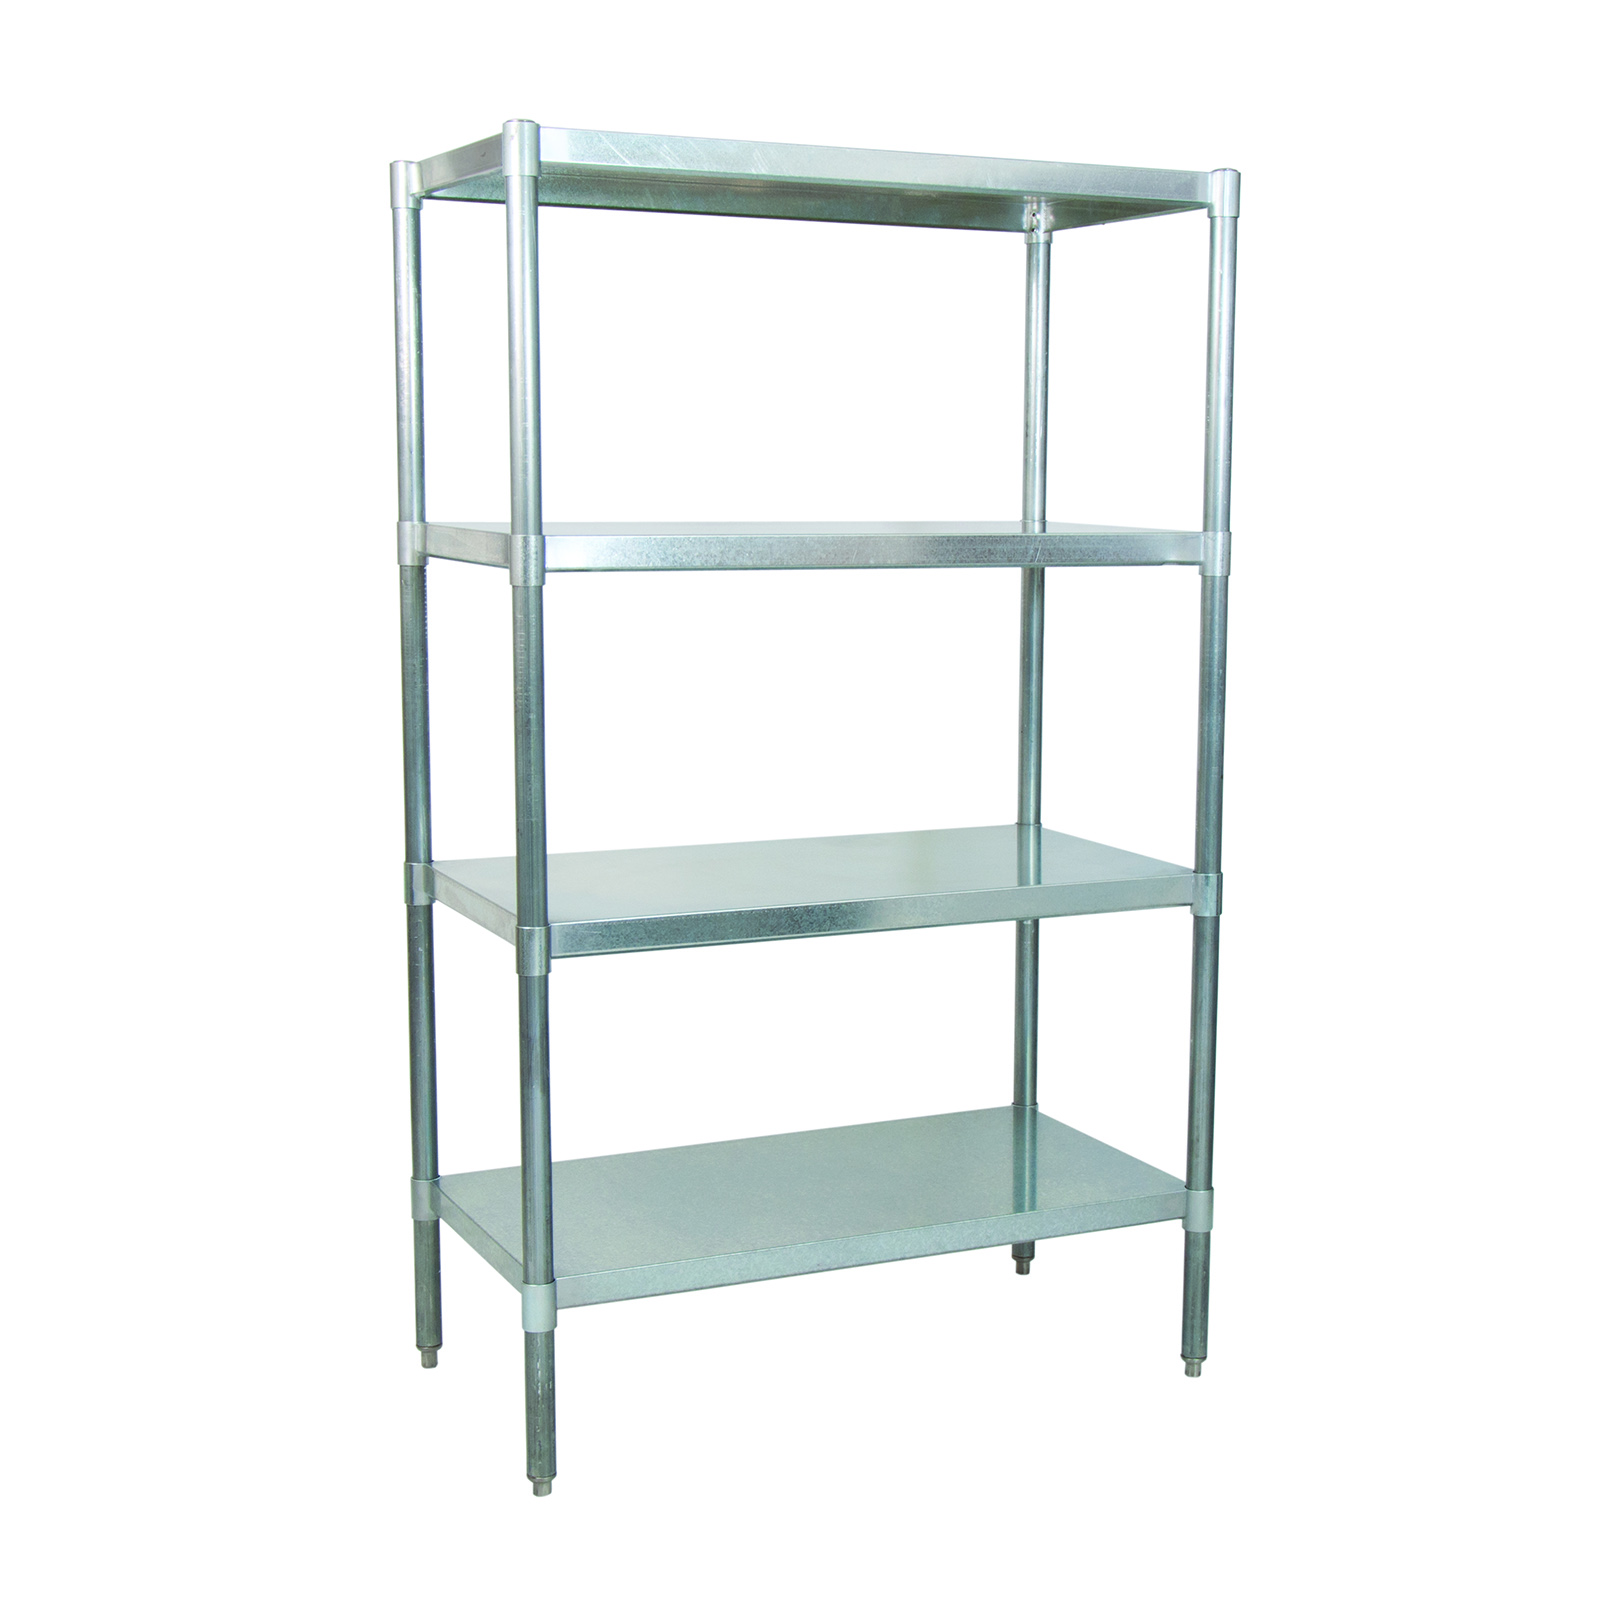 BK Resources VSU6-6724 shelving unit, solid flat